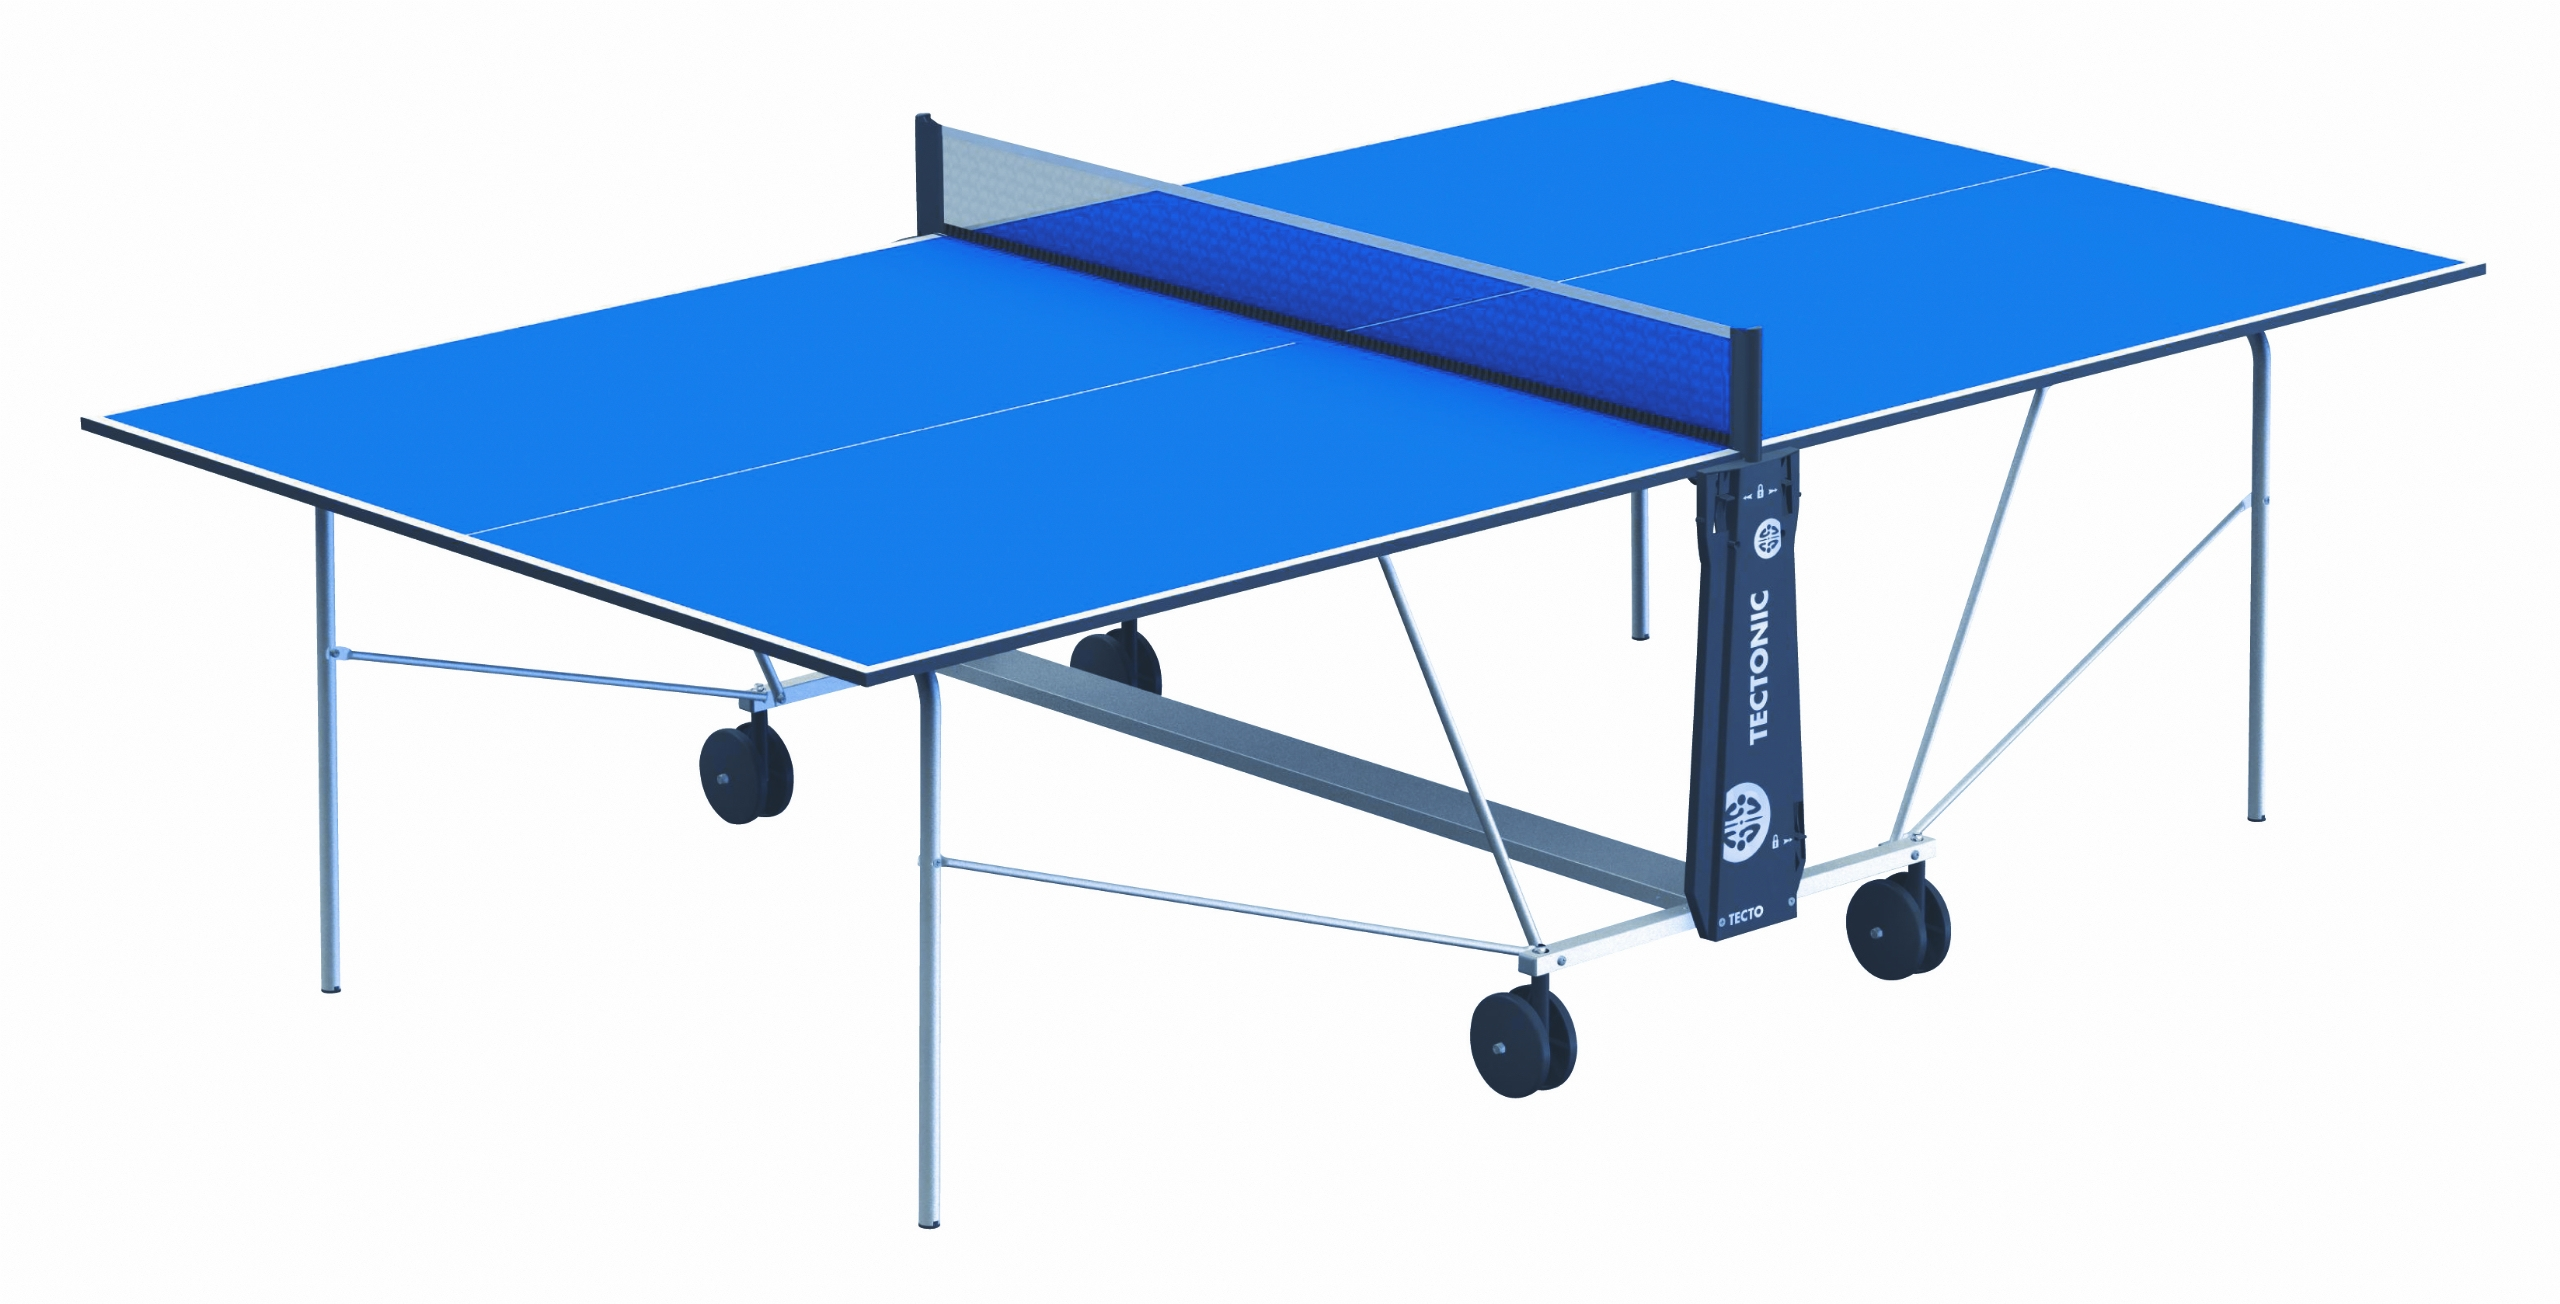 Bordtennisbord Tectonic Tecto indoor